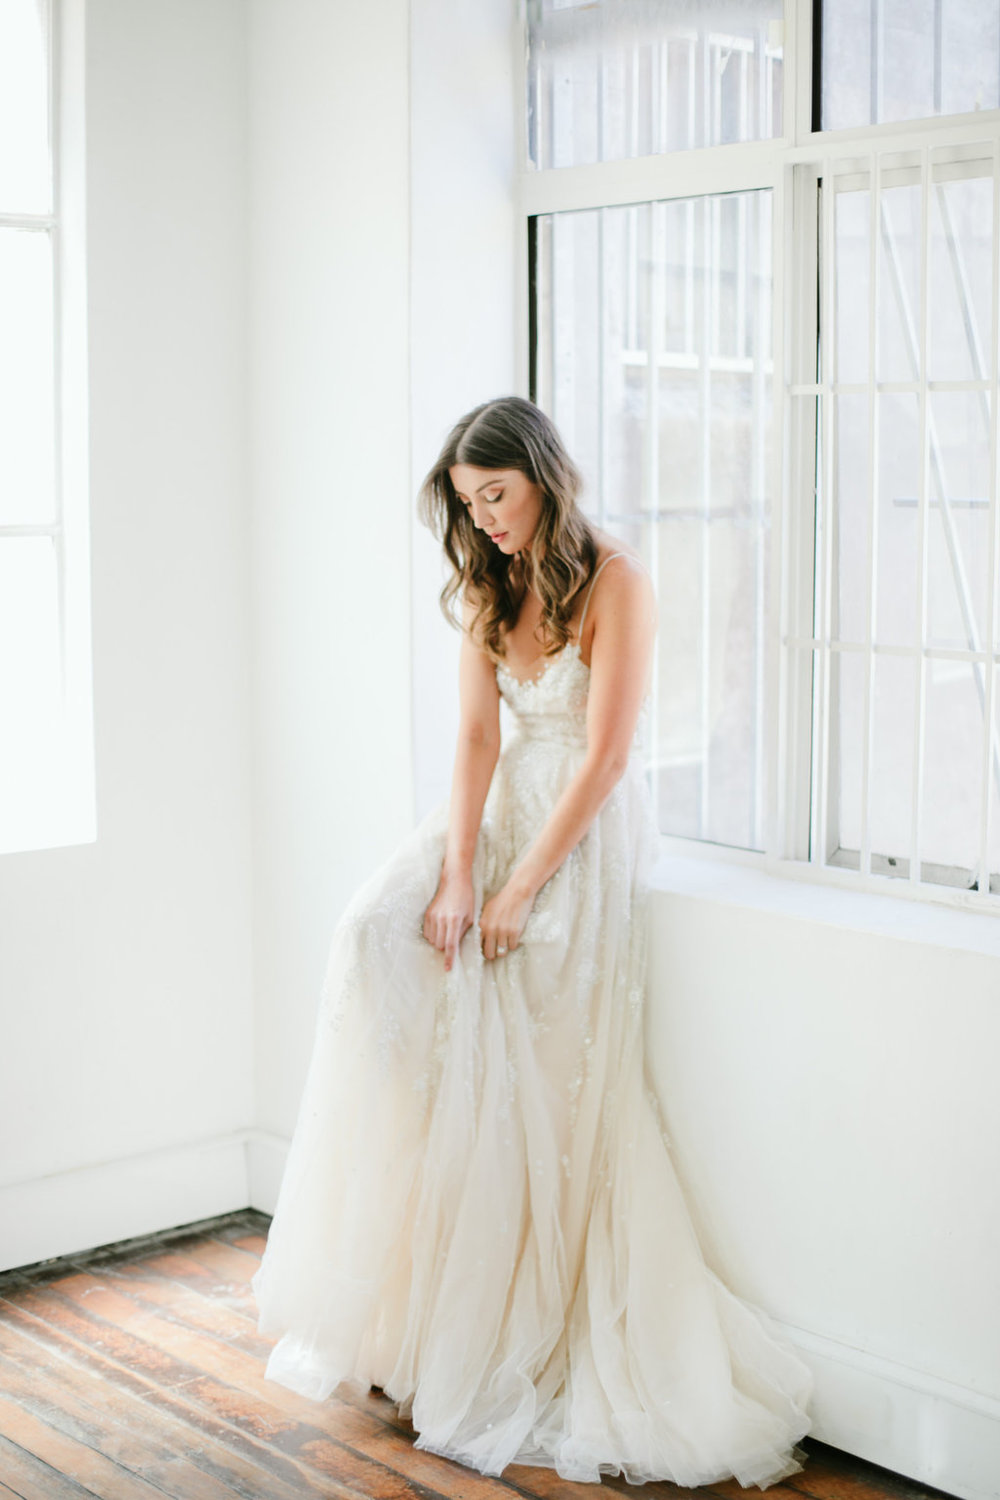 Wedding Dress featured in the first editorial by LOVE FIND CO.